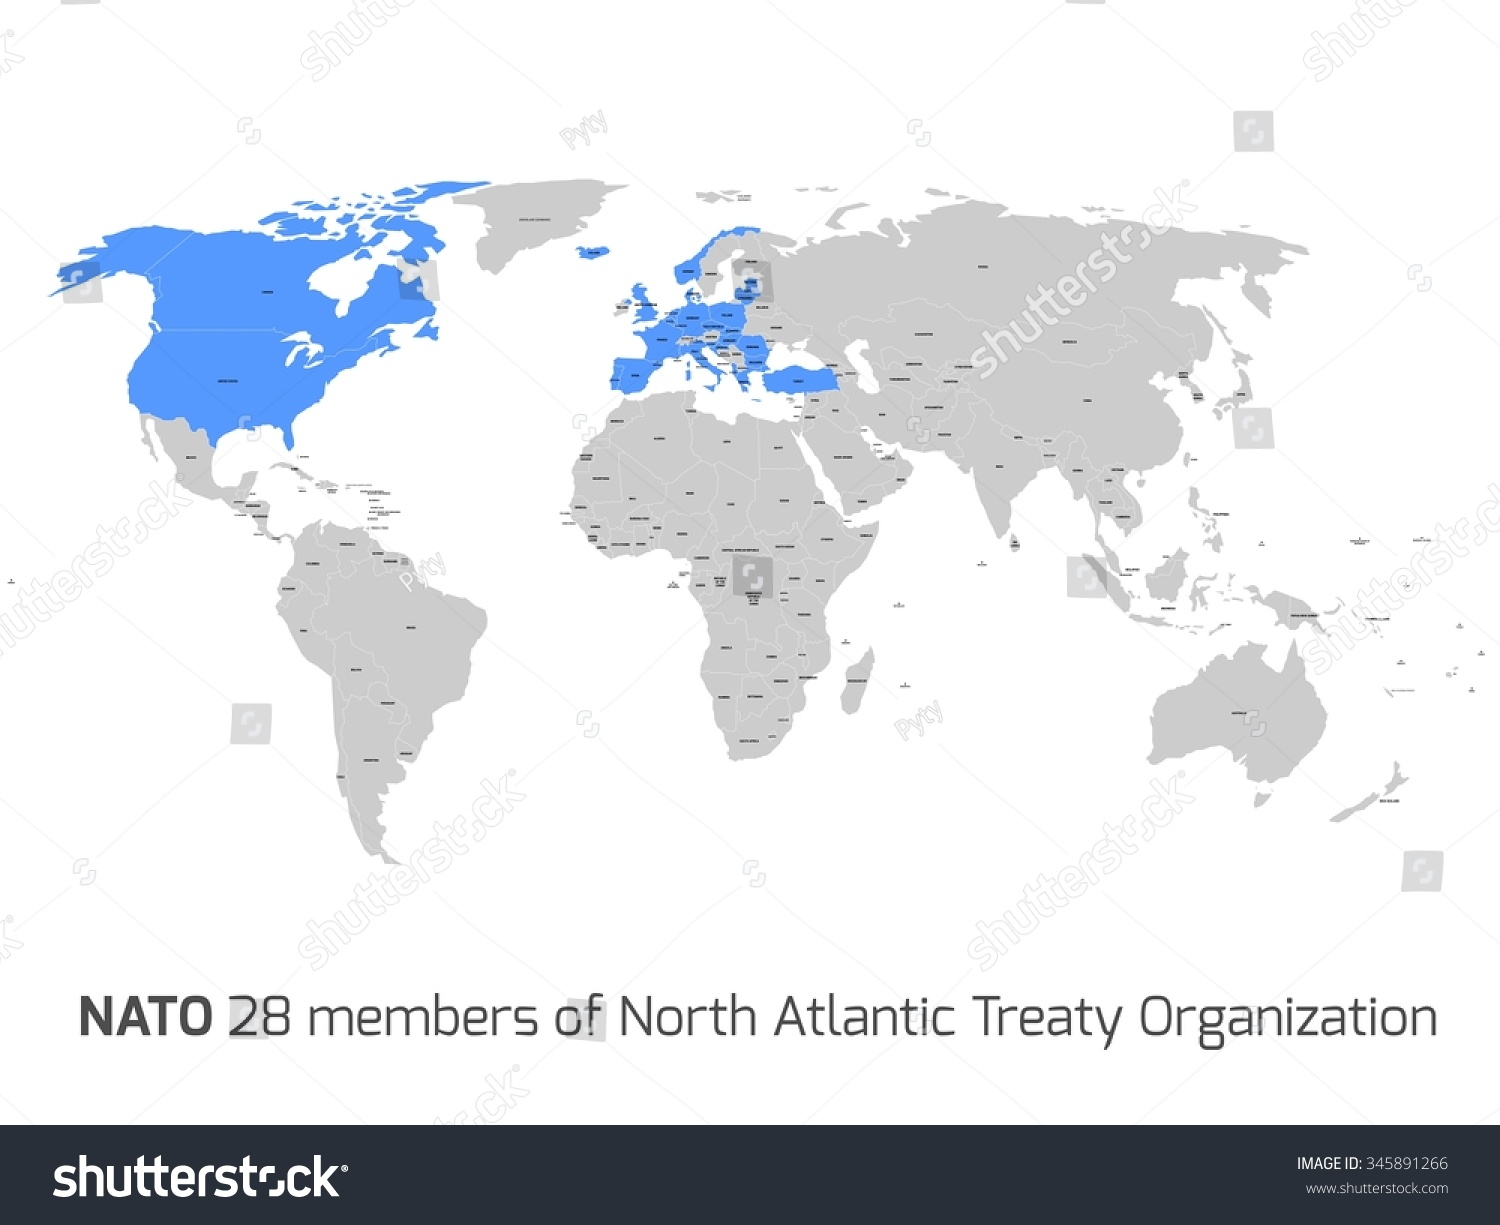 28 nato member countries highlighted by blue in blank world political map